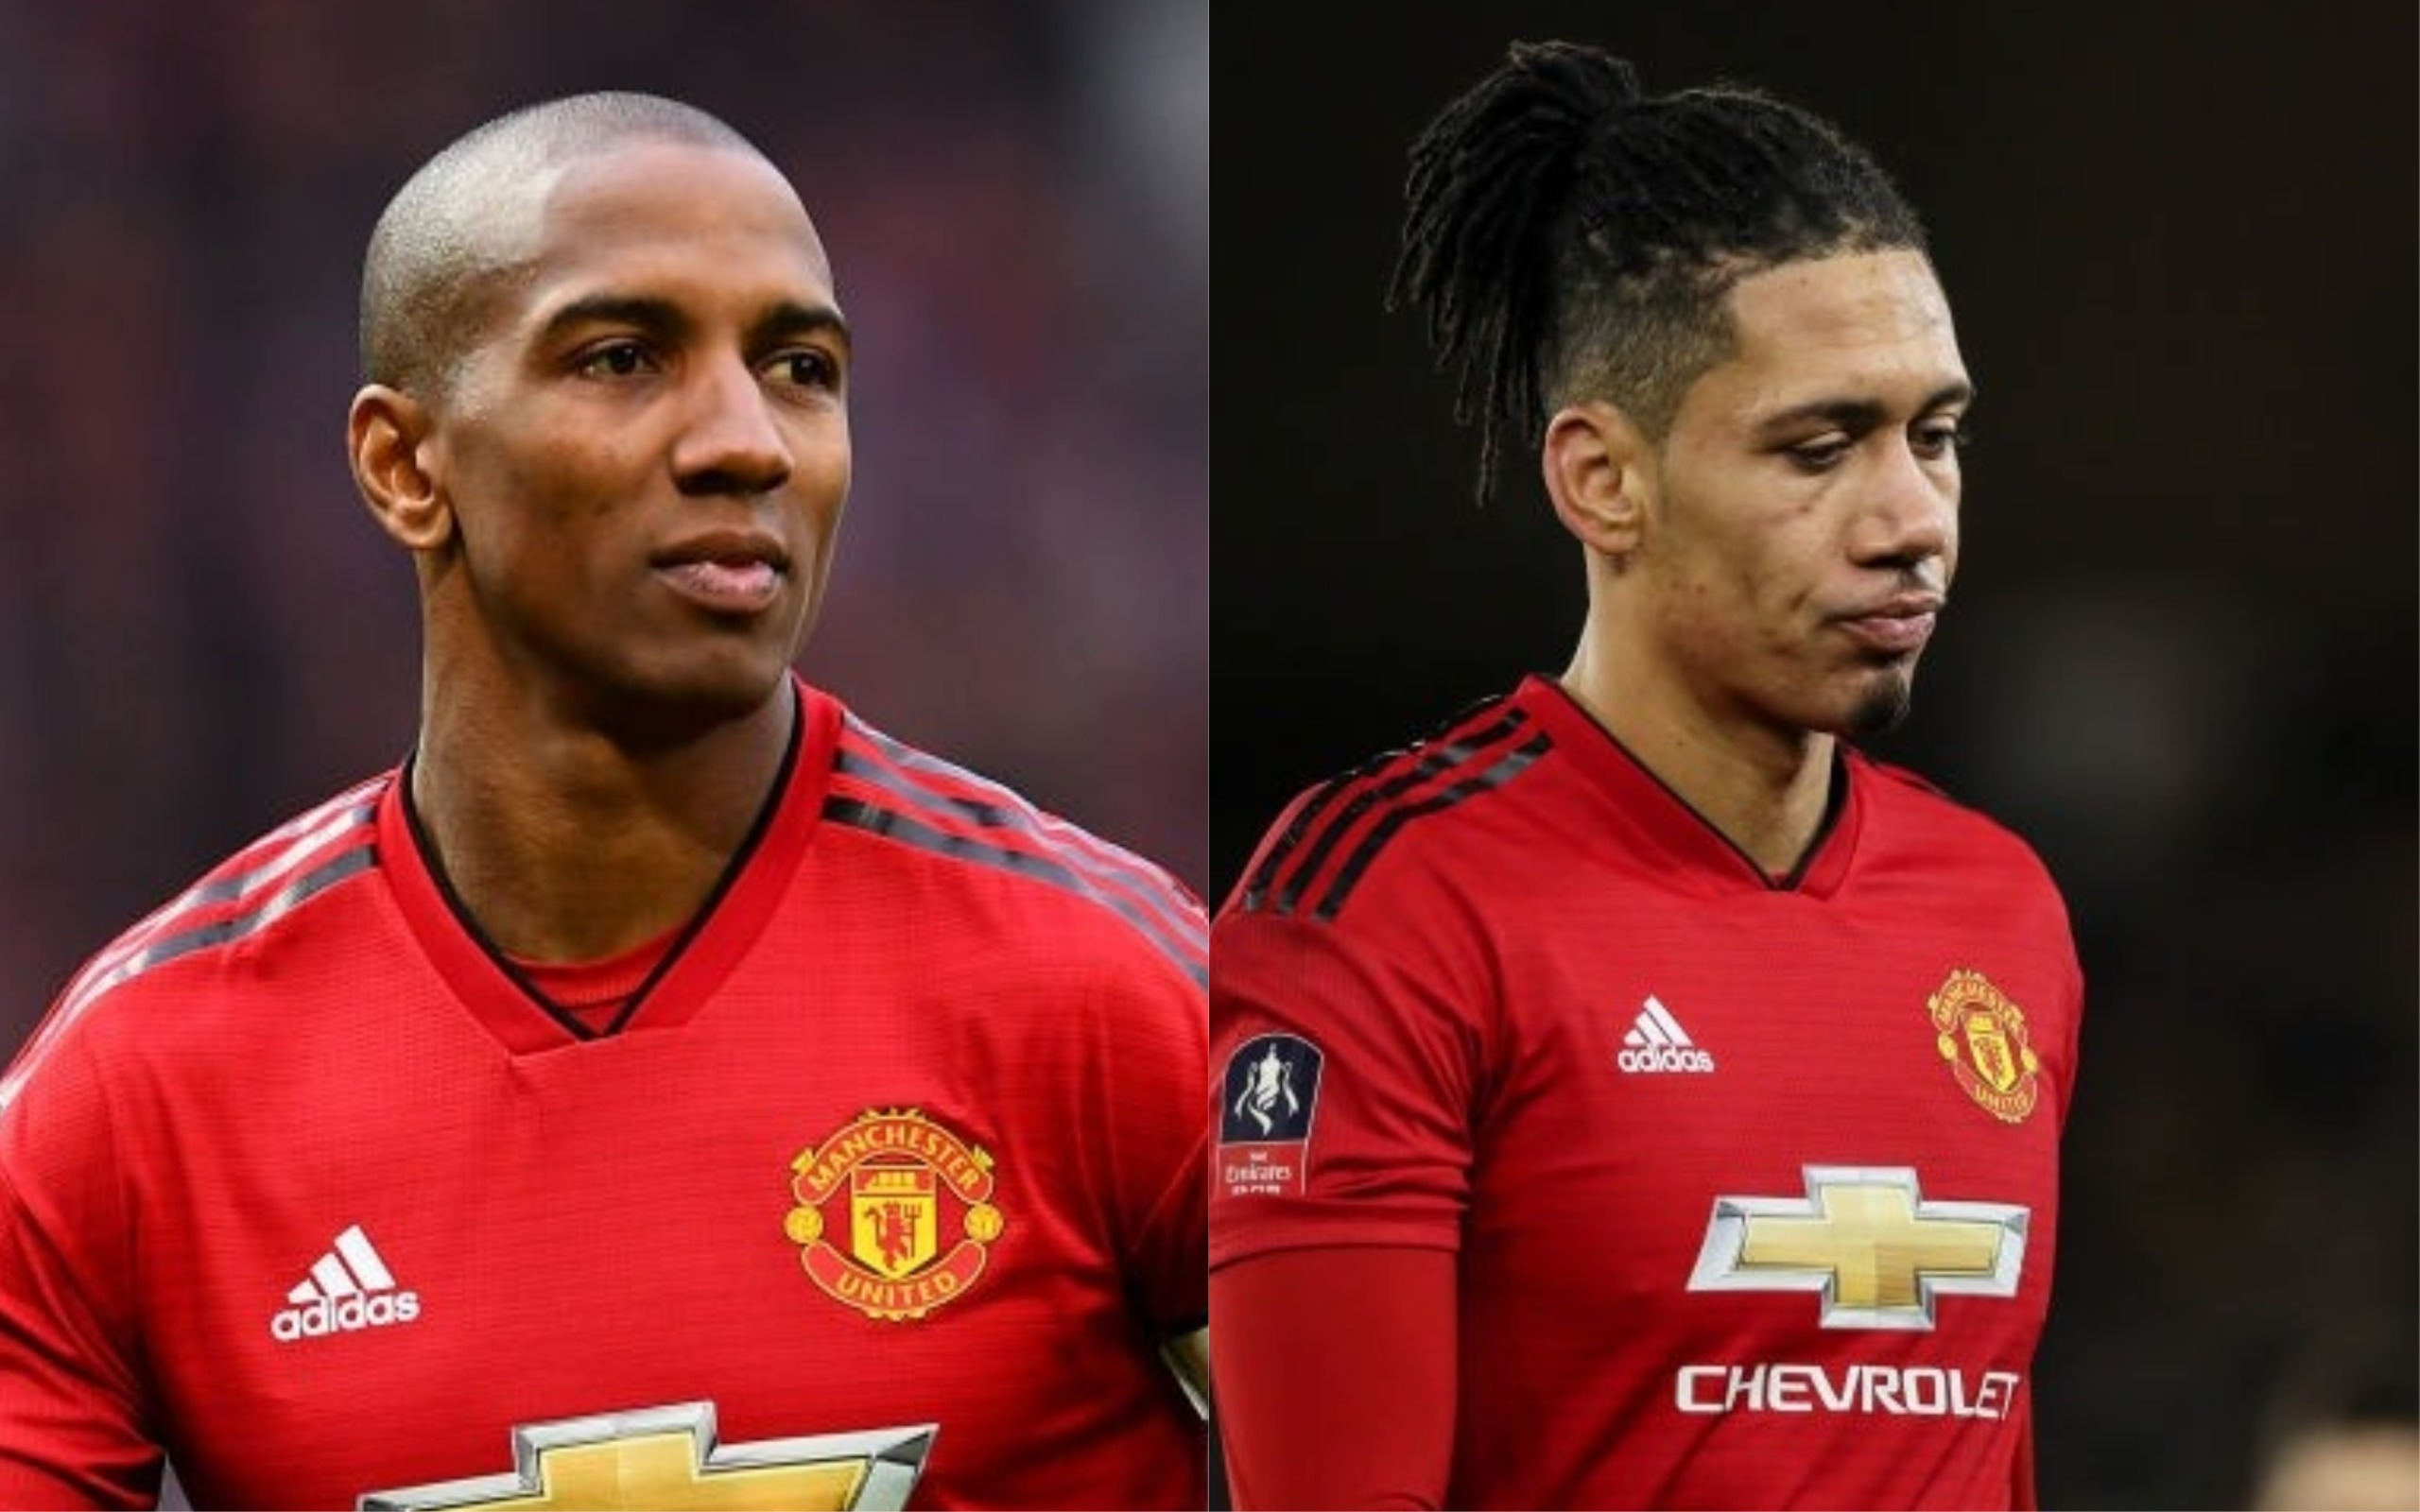 Manchester United players divided over contracts given to Ashley Young, Chris Smalling and Phil Jones